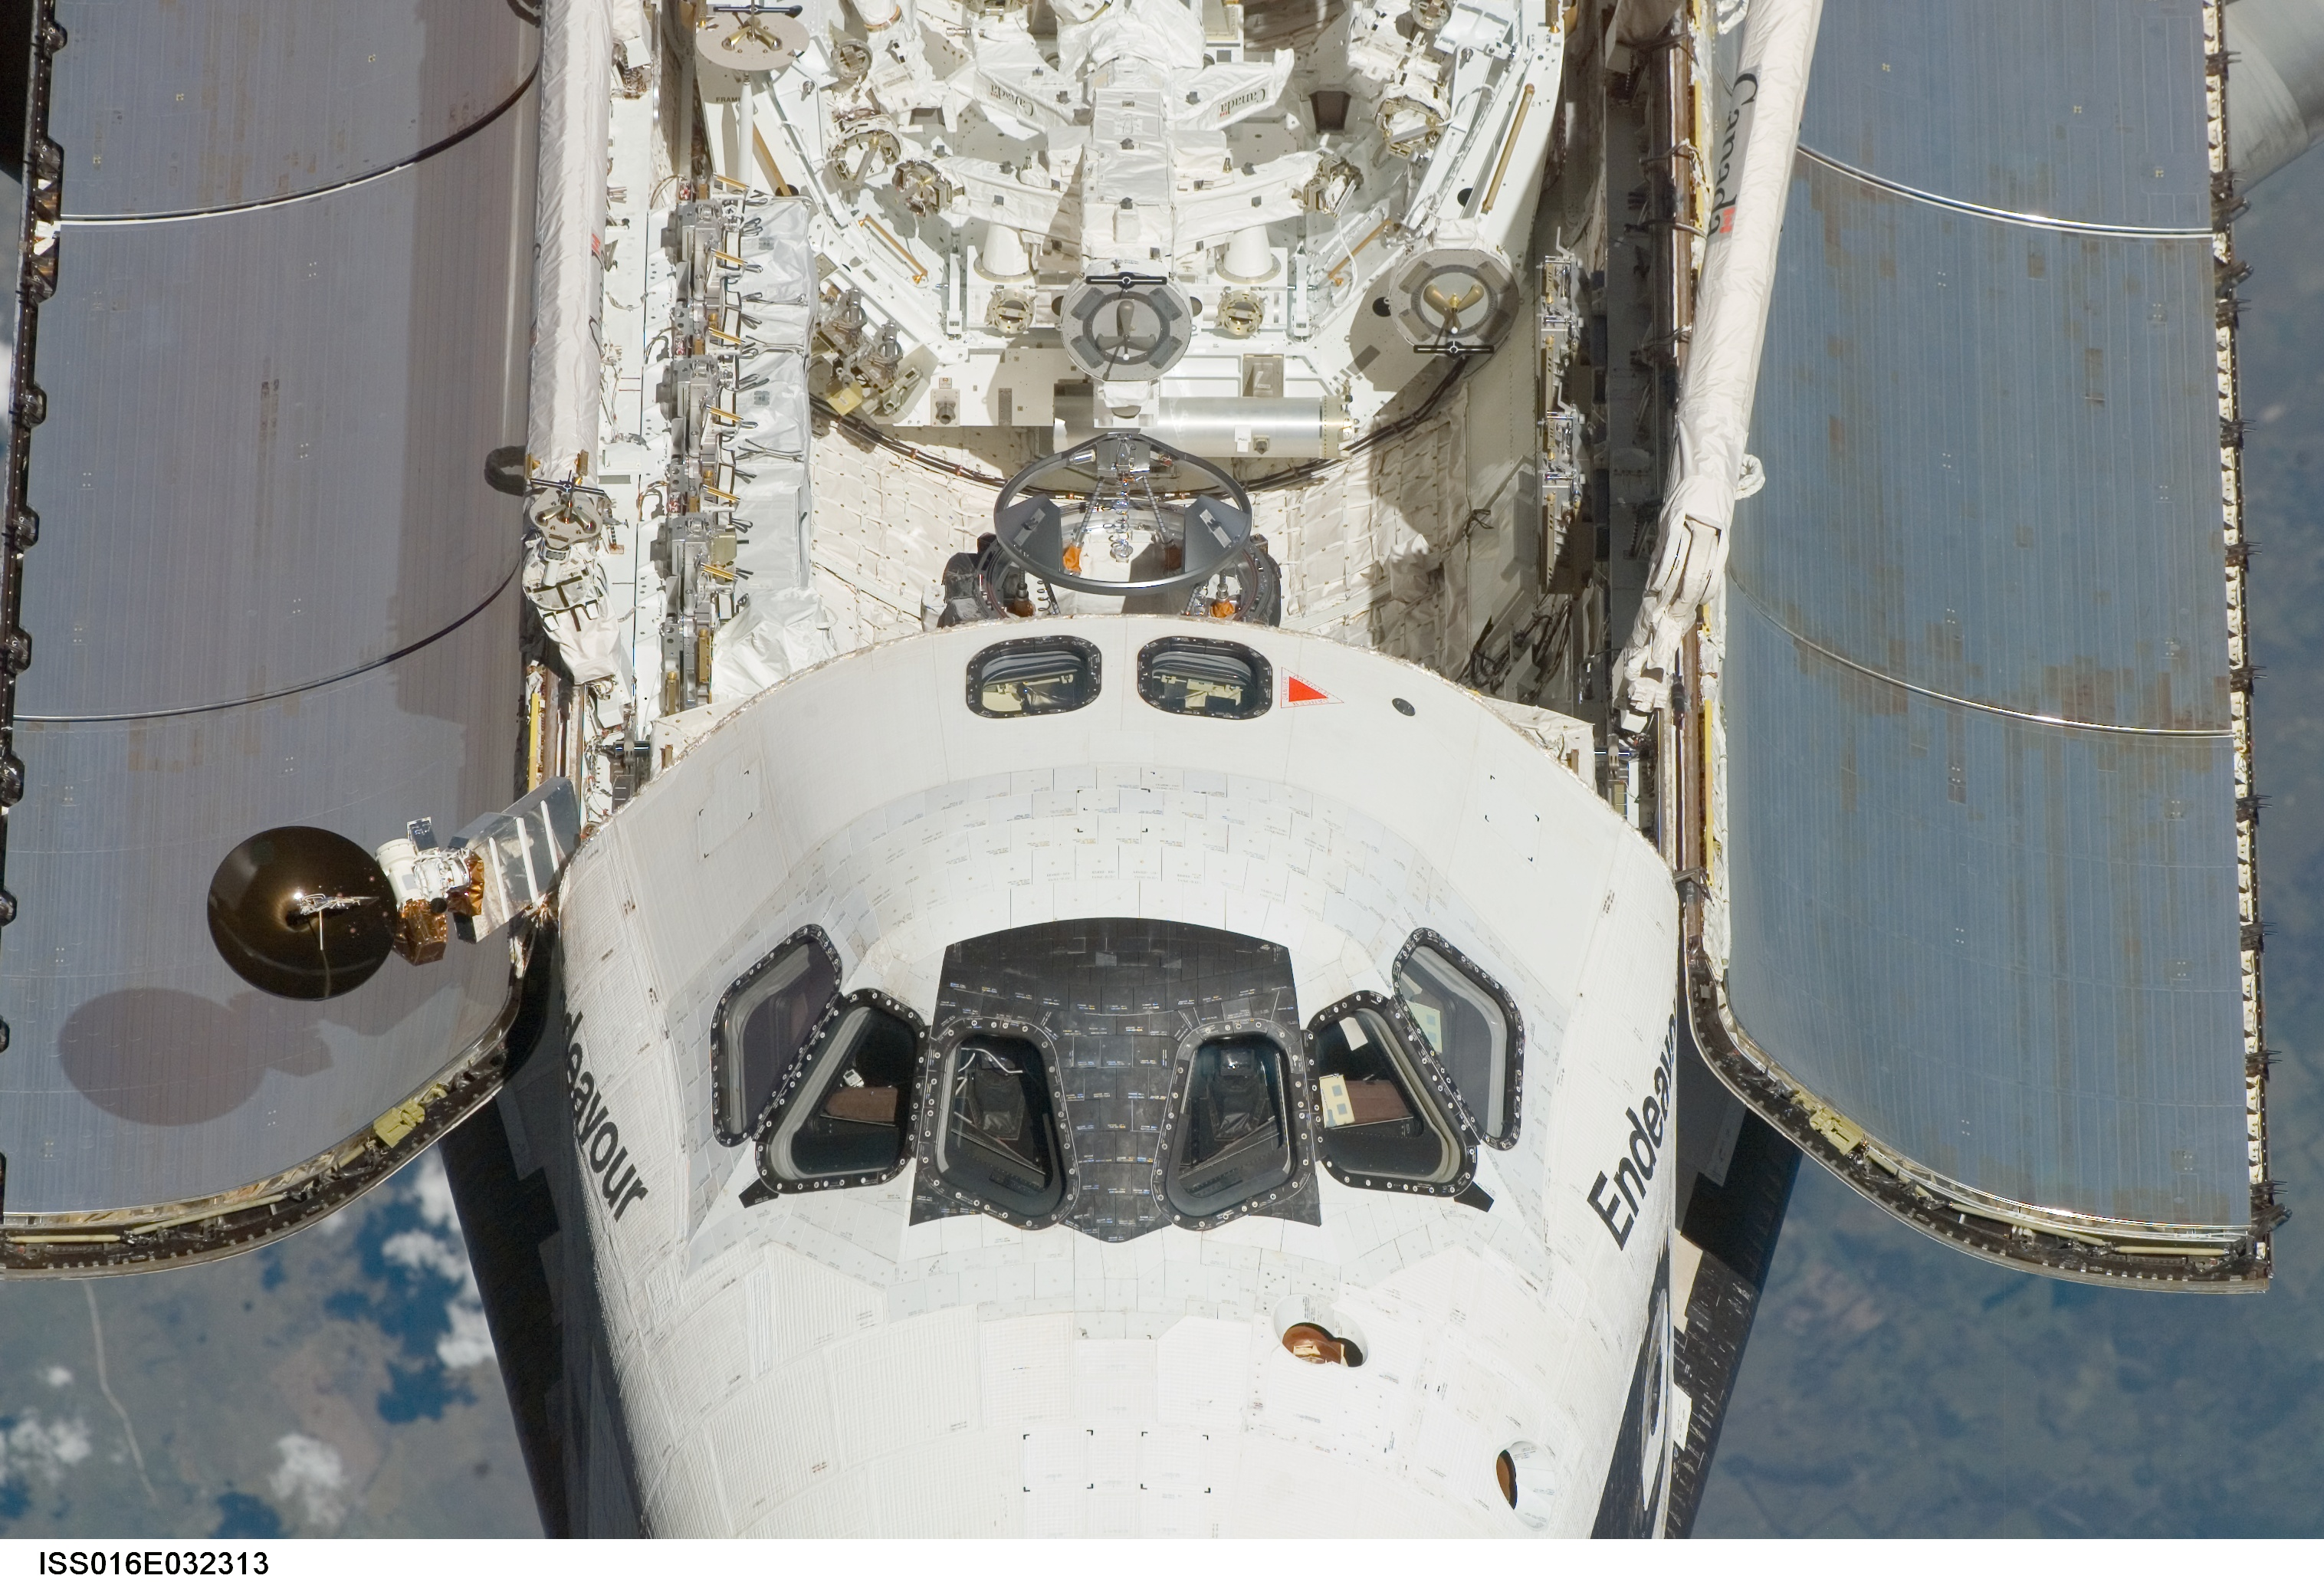 <em>Endeavour</em> on approach to the ISS, showing details of forward flight deck windows, upper flight deck rendezvous windows, and airlock docking assembly aft of the flight deck.